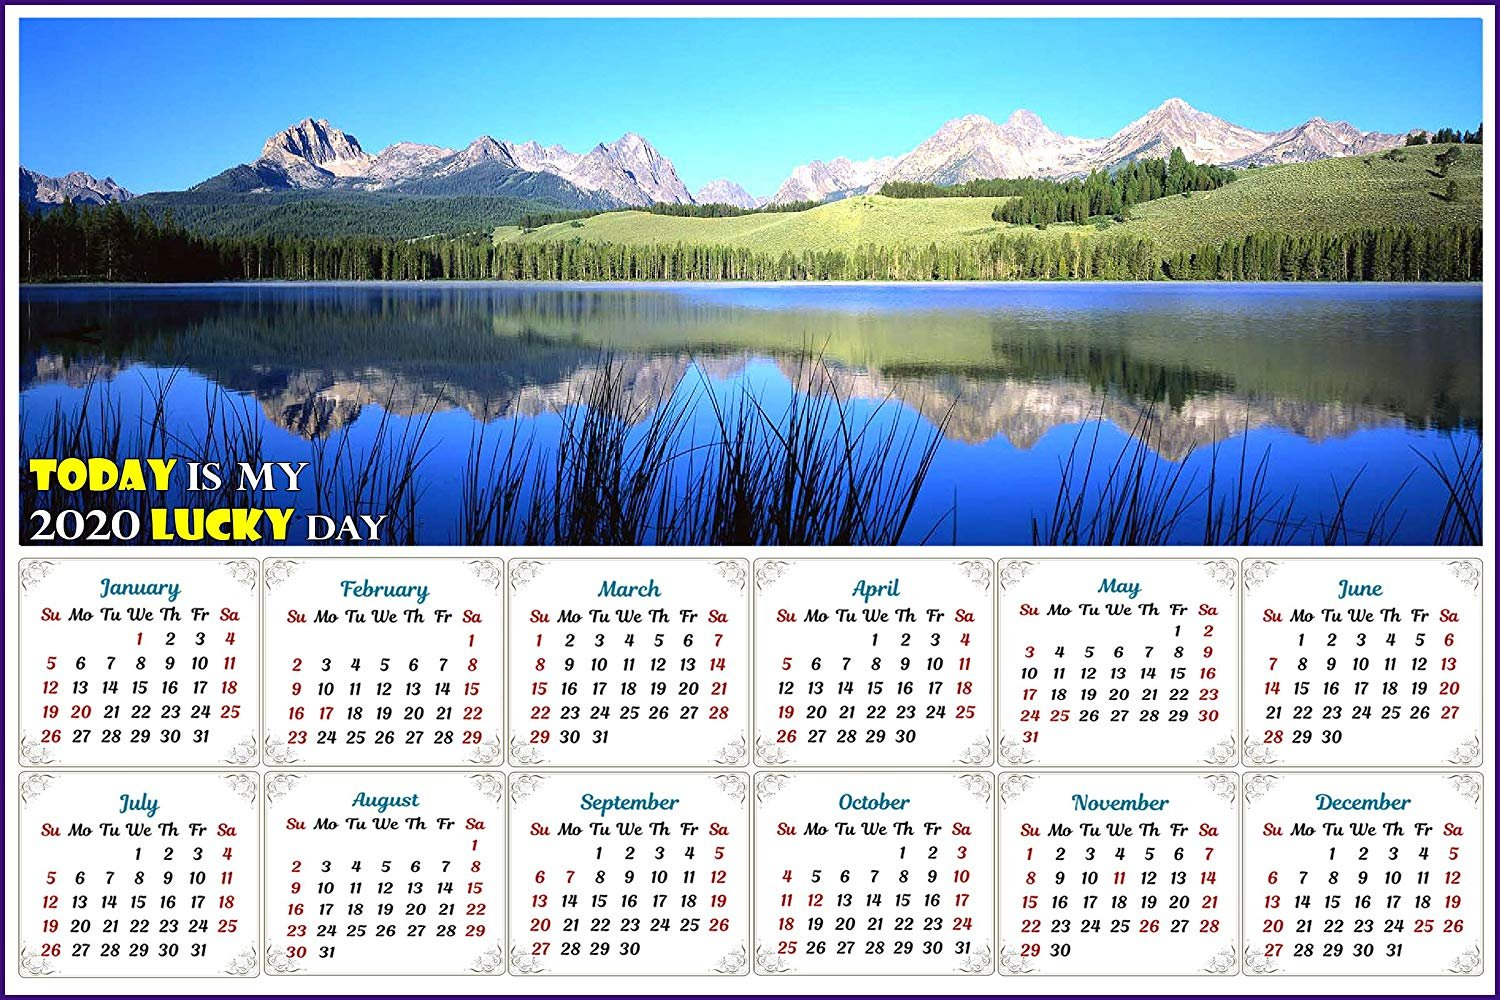 2020 Magnetic Calendar - Calendar Magnets - Today is My Lucky Day - Edition #15